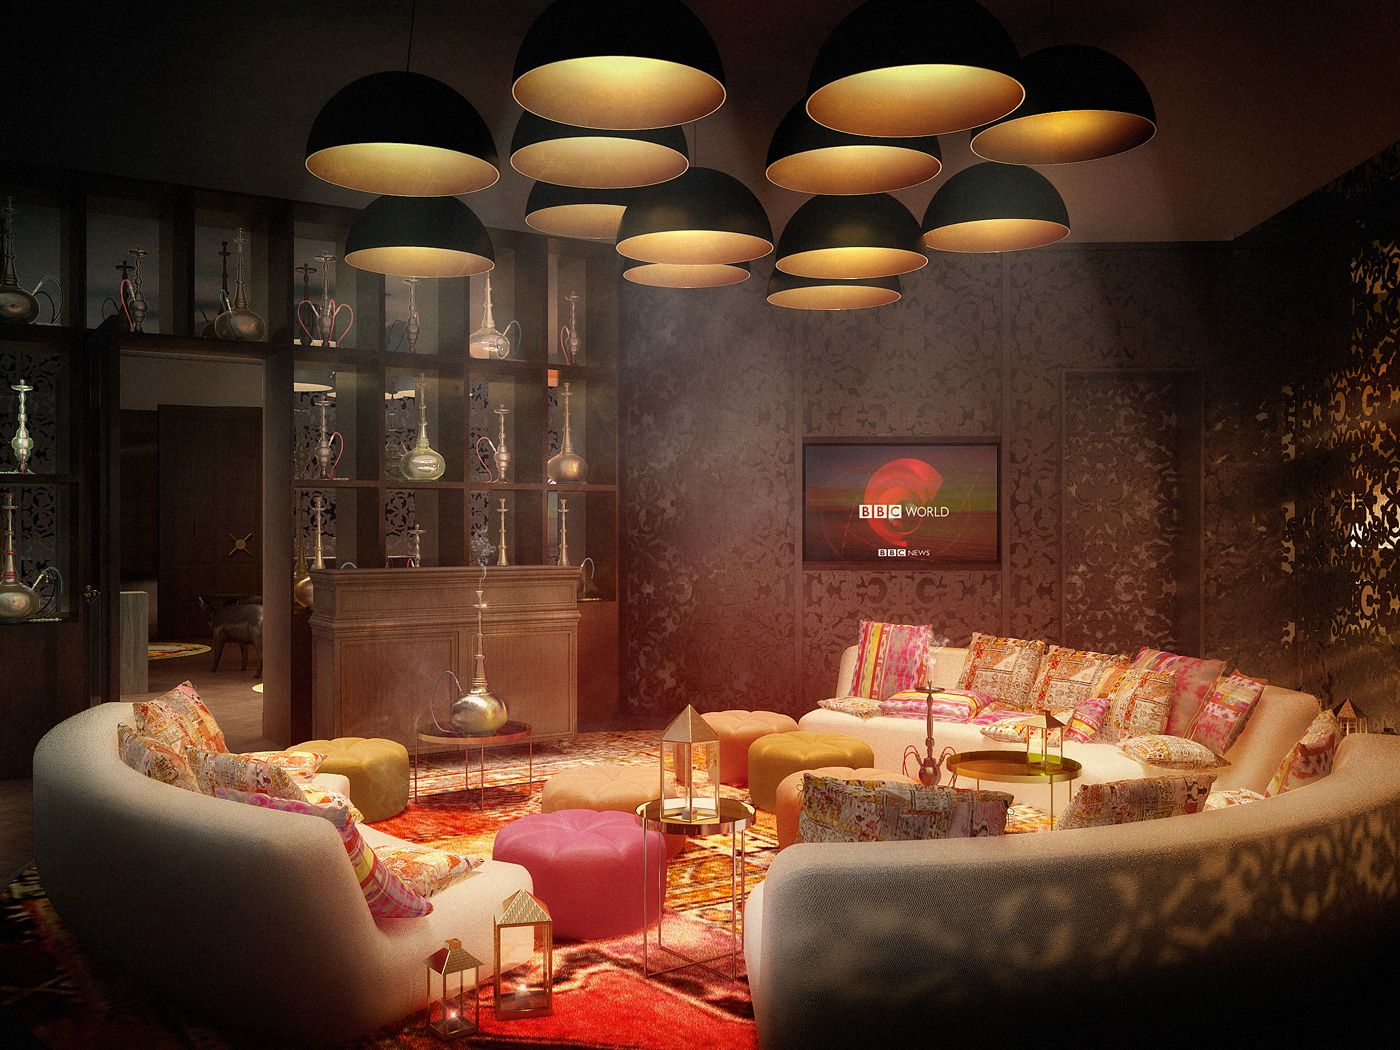 Magasin Decoration Zurich The Shisha Lounge Of The Kameha Grand Zurich With Its